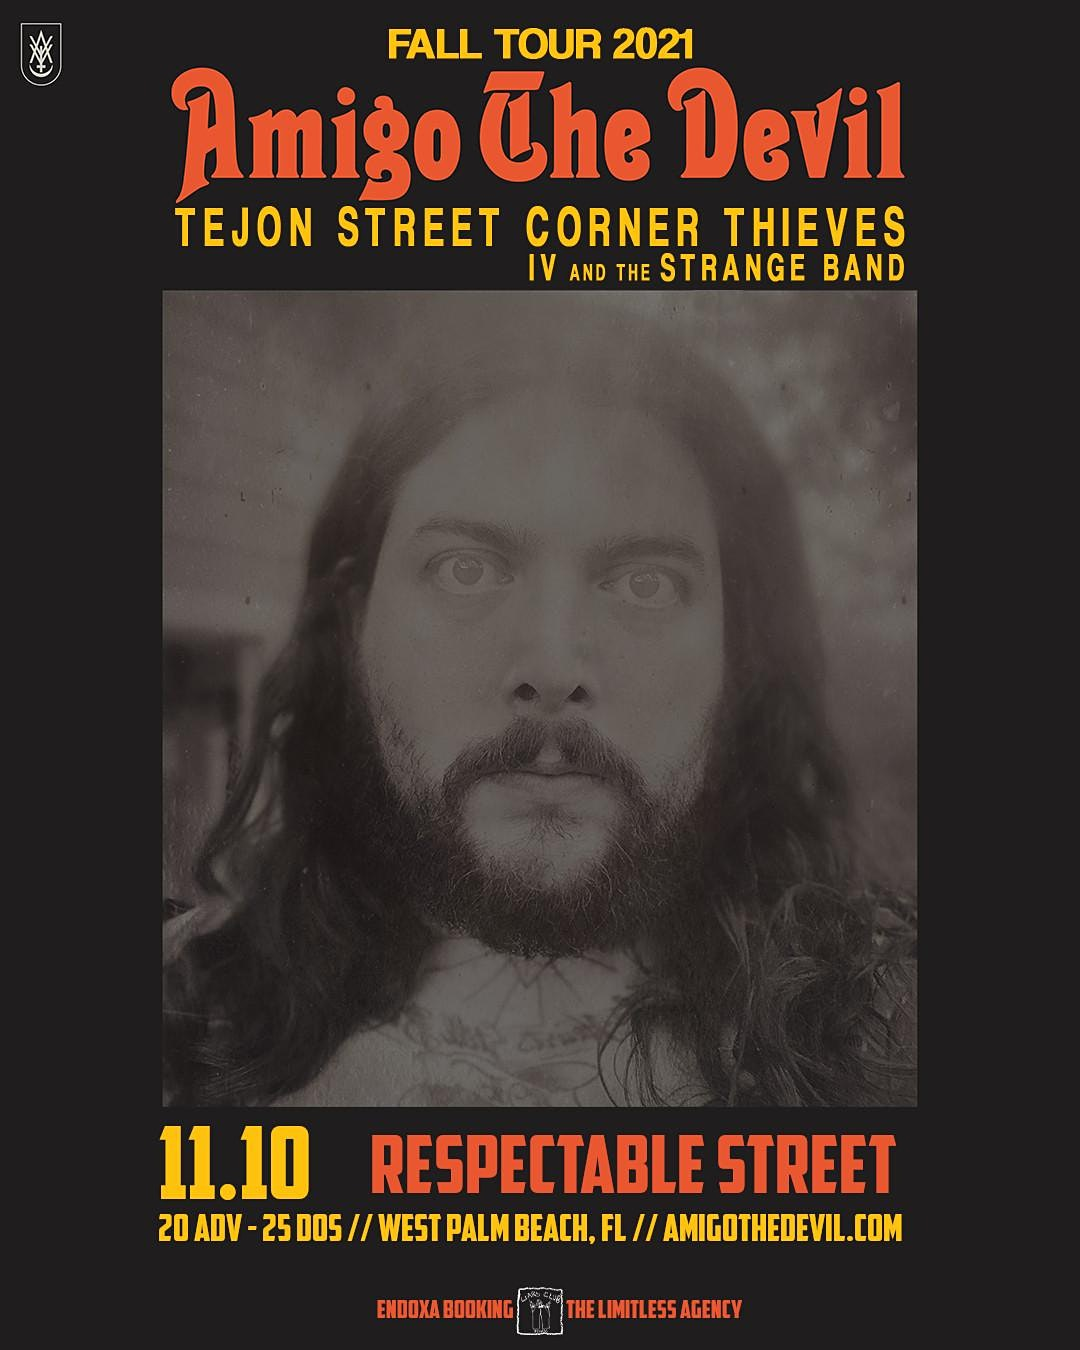 Amigo the Devil, Tejon Street Corner Thieves, and IV and the Strange Band in West Palm Beach at Respectable Street